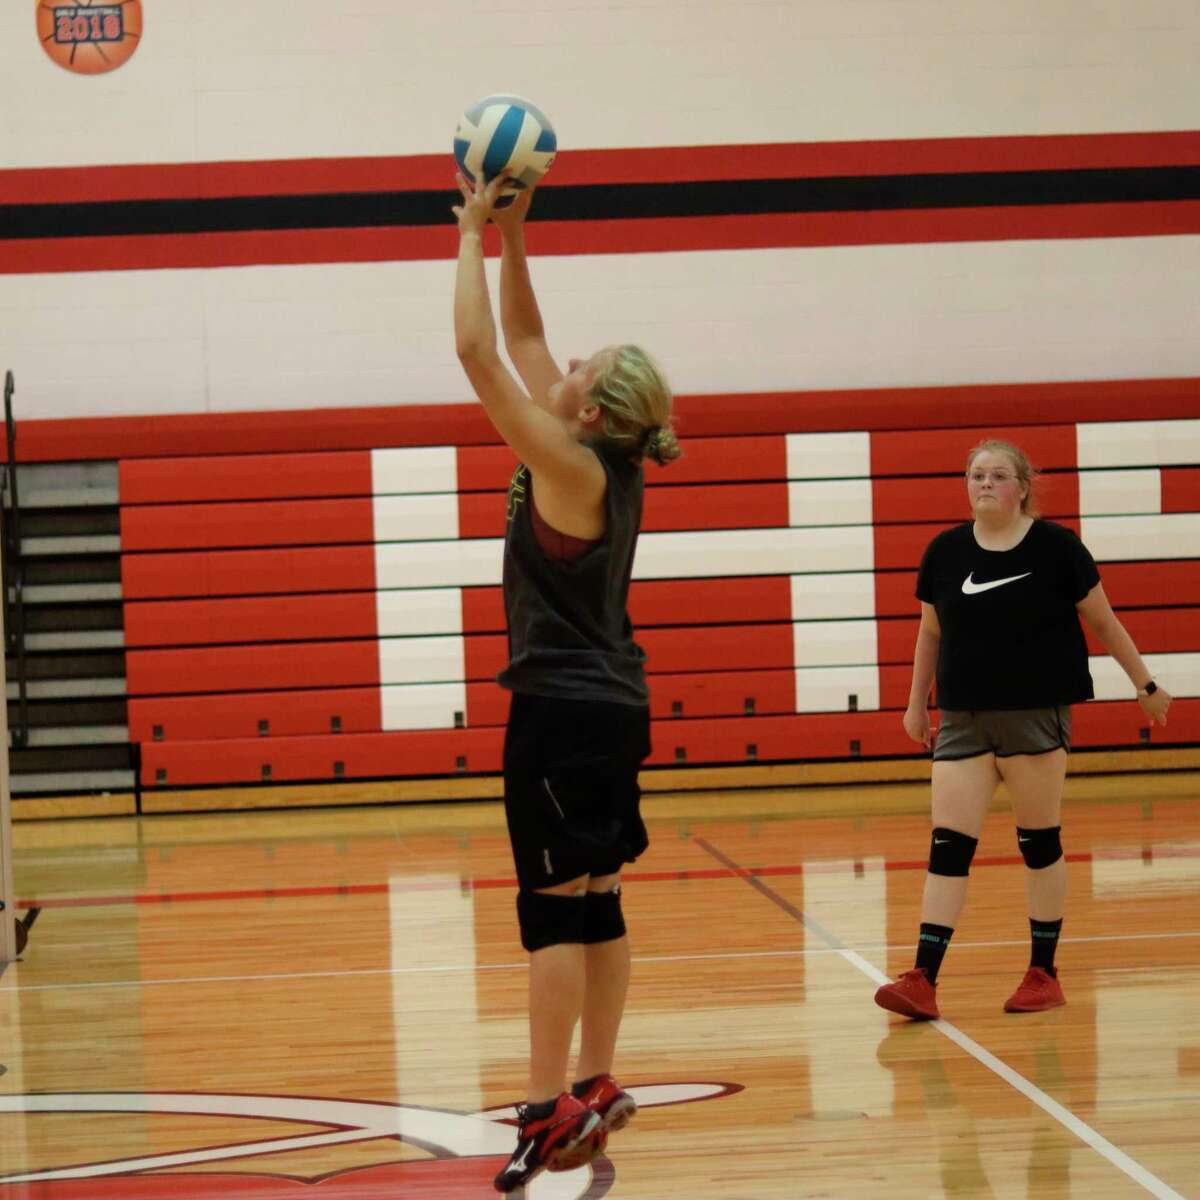 Taylor Merrill sets the ball near they net during Bear Lake's practice on Aug. 16. (Robert Myers/News Advocate)